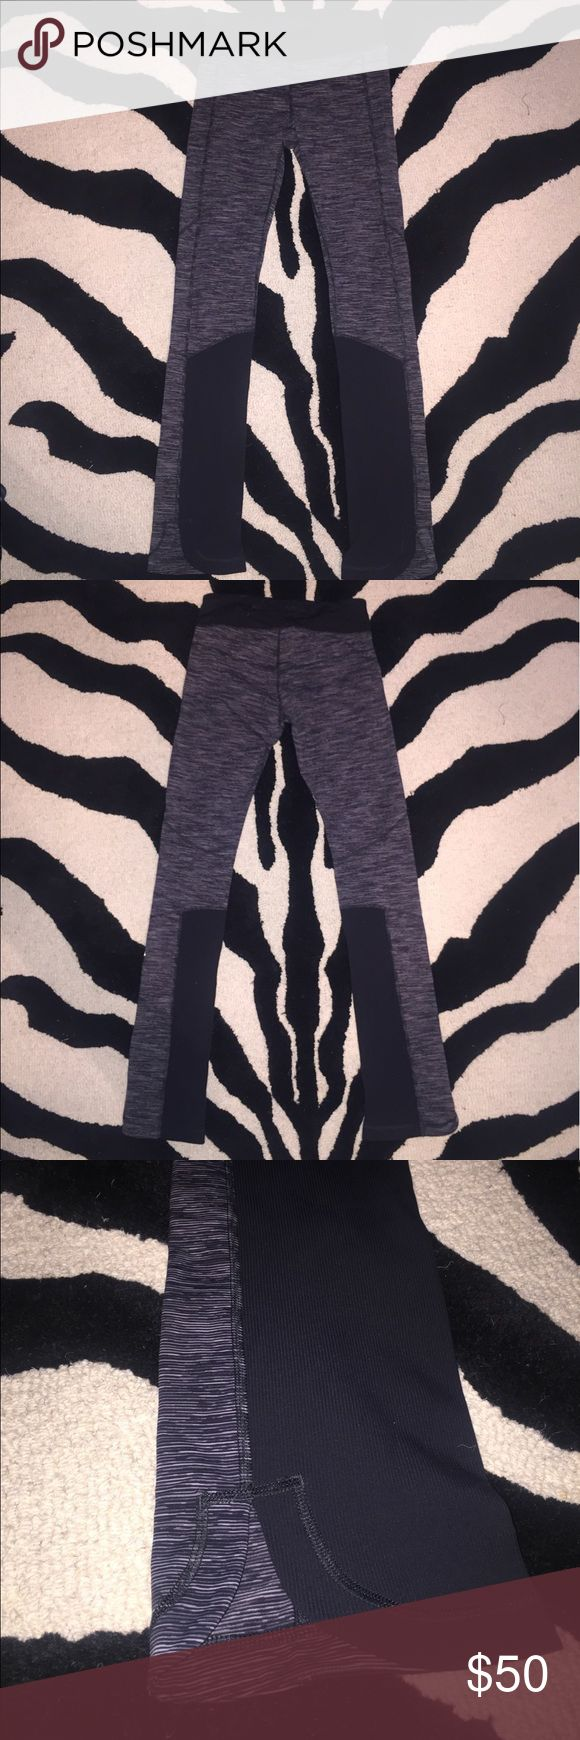 Lululemon Pants Lululemon pants in like new condition...worn two times! Super cute gray/white/black pattern with black accent panels, boot cut like fit over shoes with a curved slit at bottom hem. Rare find! lululemon athletica Pants Leggings